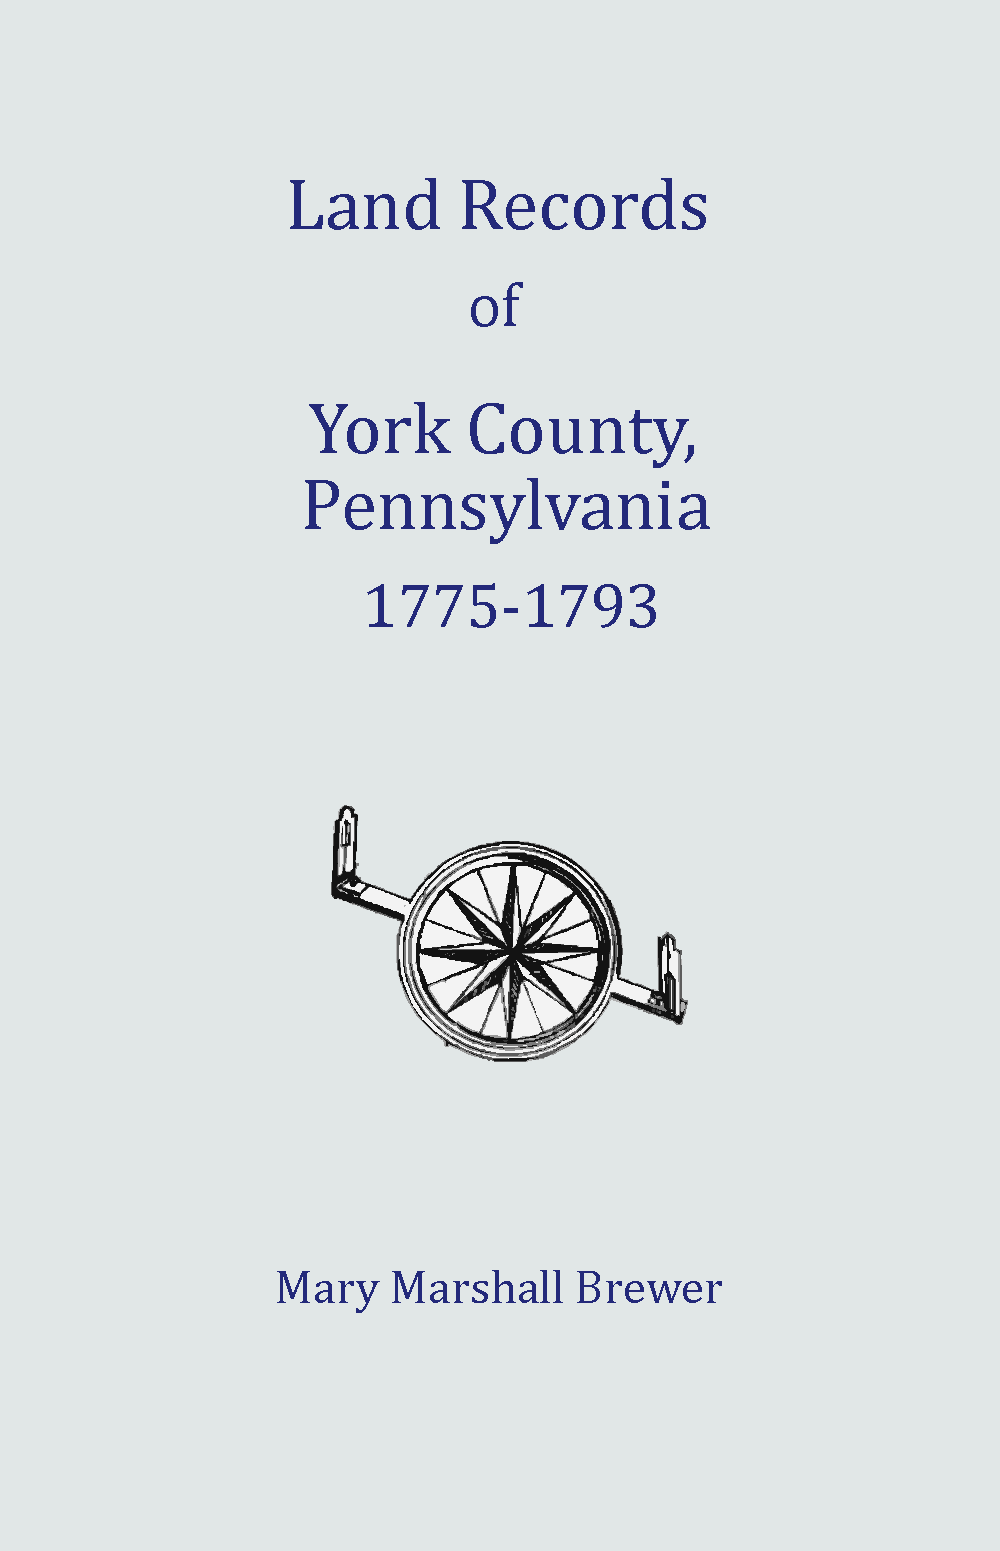 Land Records of York County, Pennsylvania, Libers G and H, 1775-1793